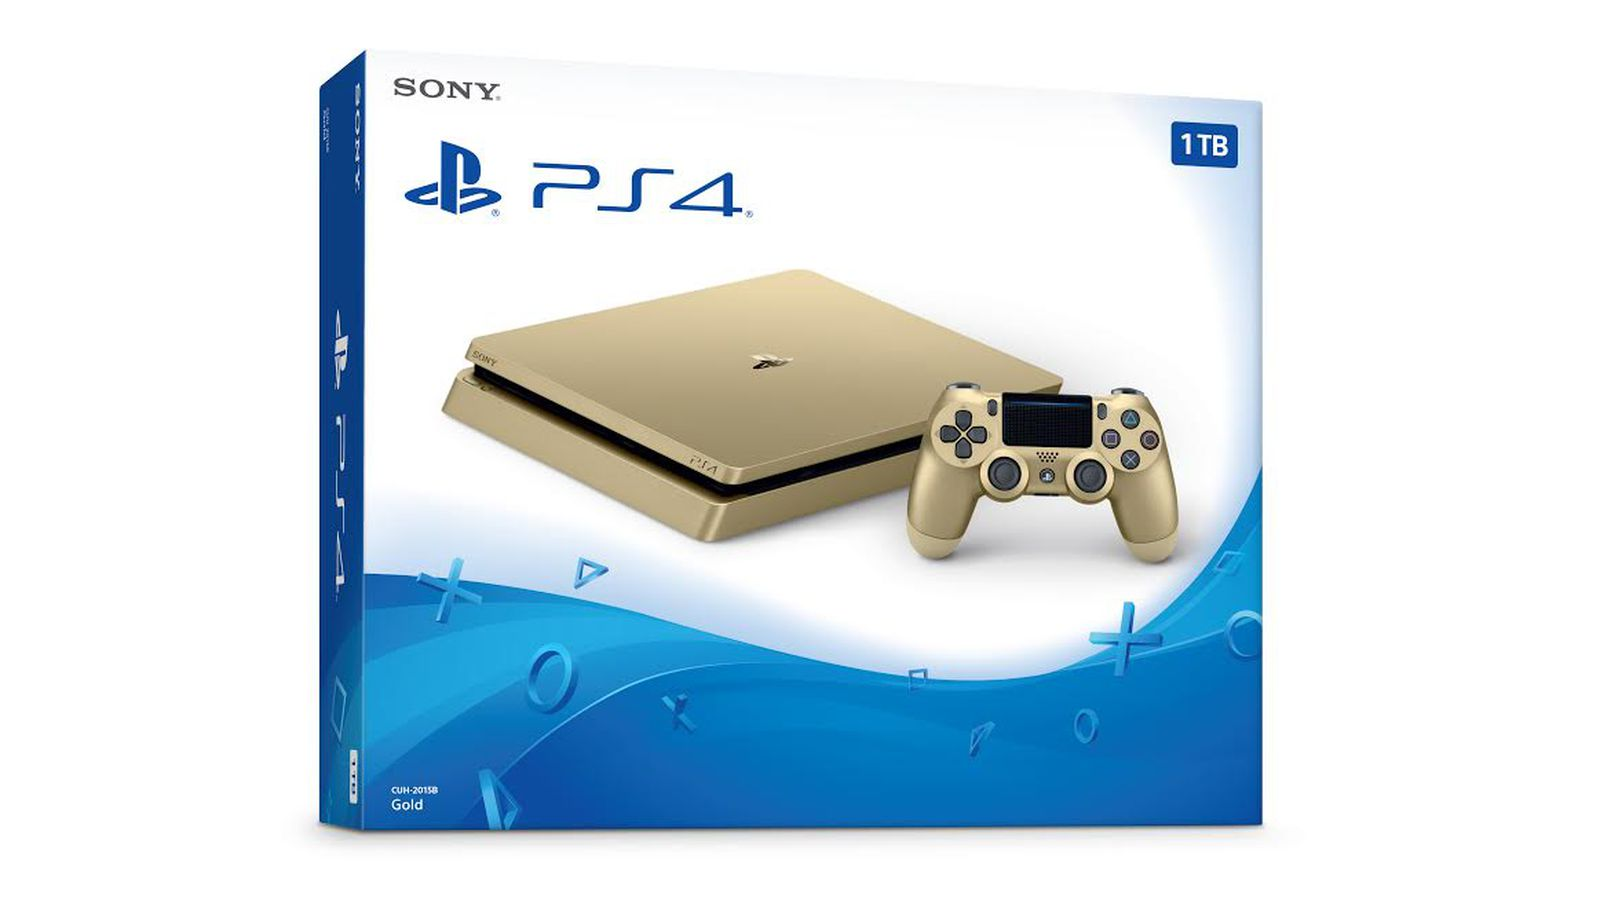 Sony is releasing a limited edition gold PS4 for $249 - The Verge